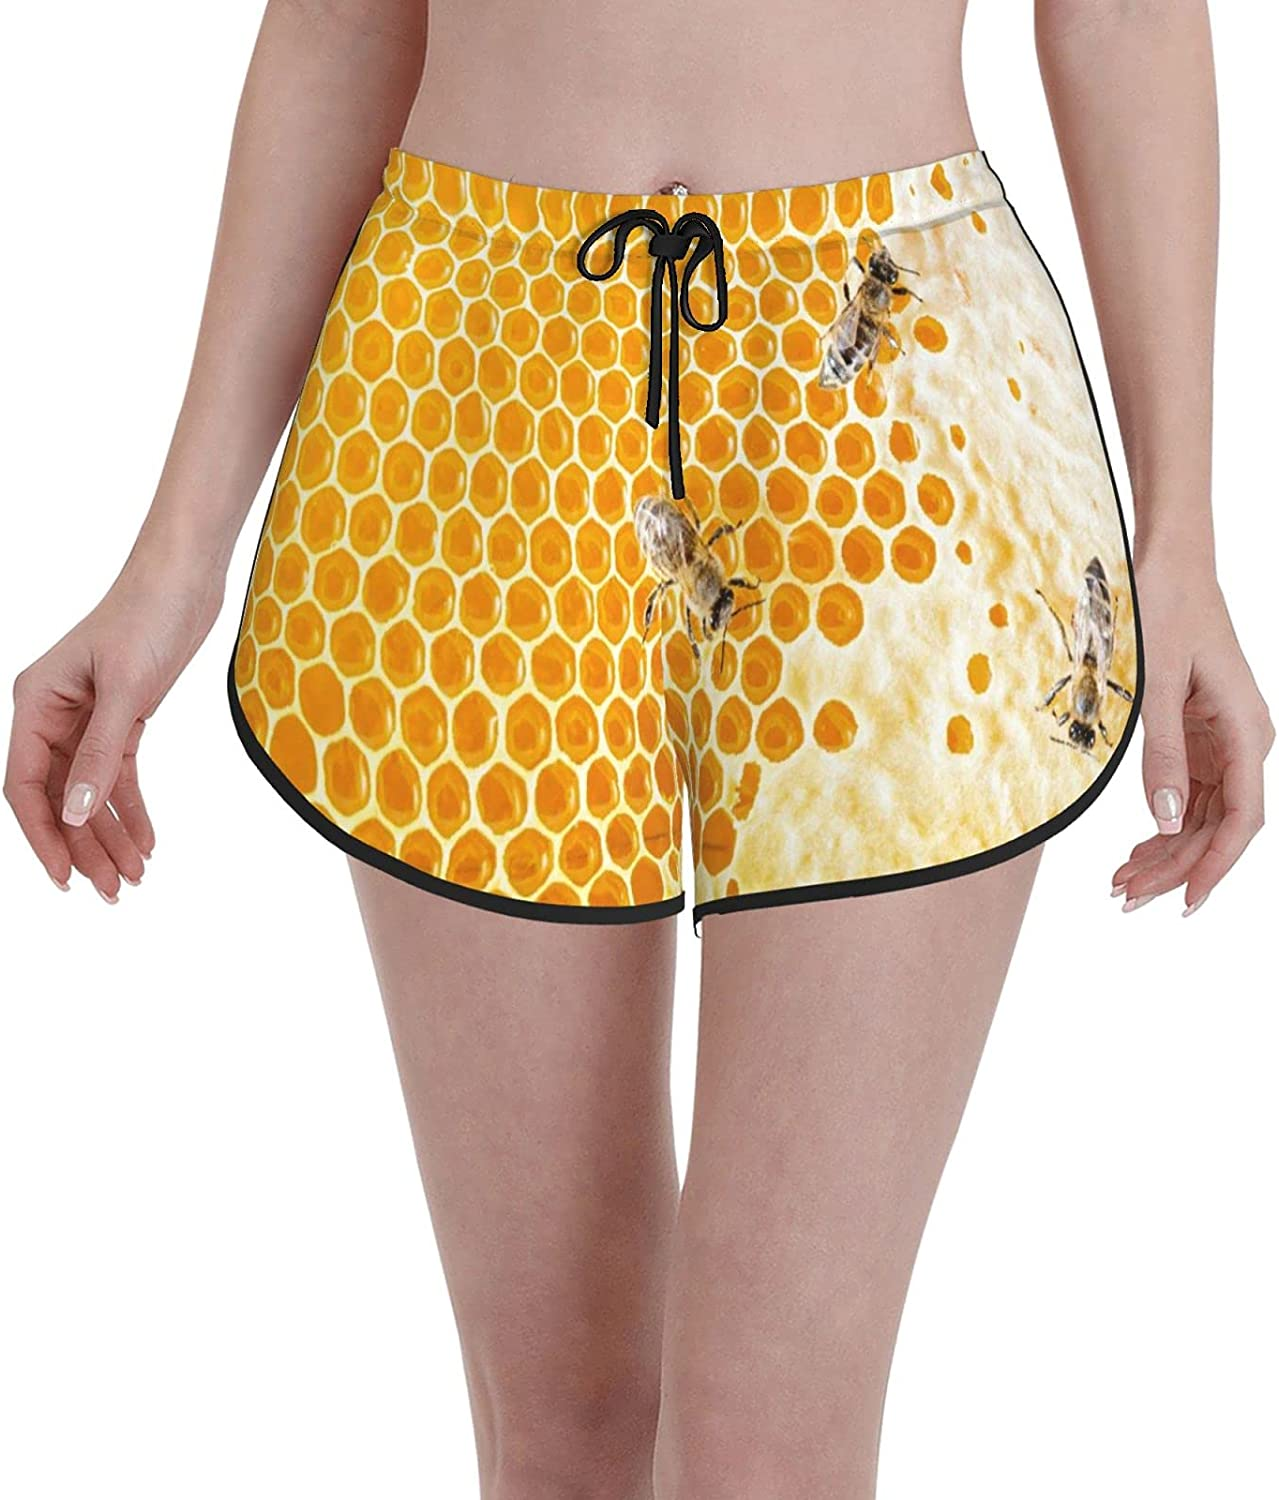 Janrely Max 74% OFF Casual Board Shorts for Free shipping anywhere in the nation Women We Girls Swim Beach Trunks